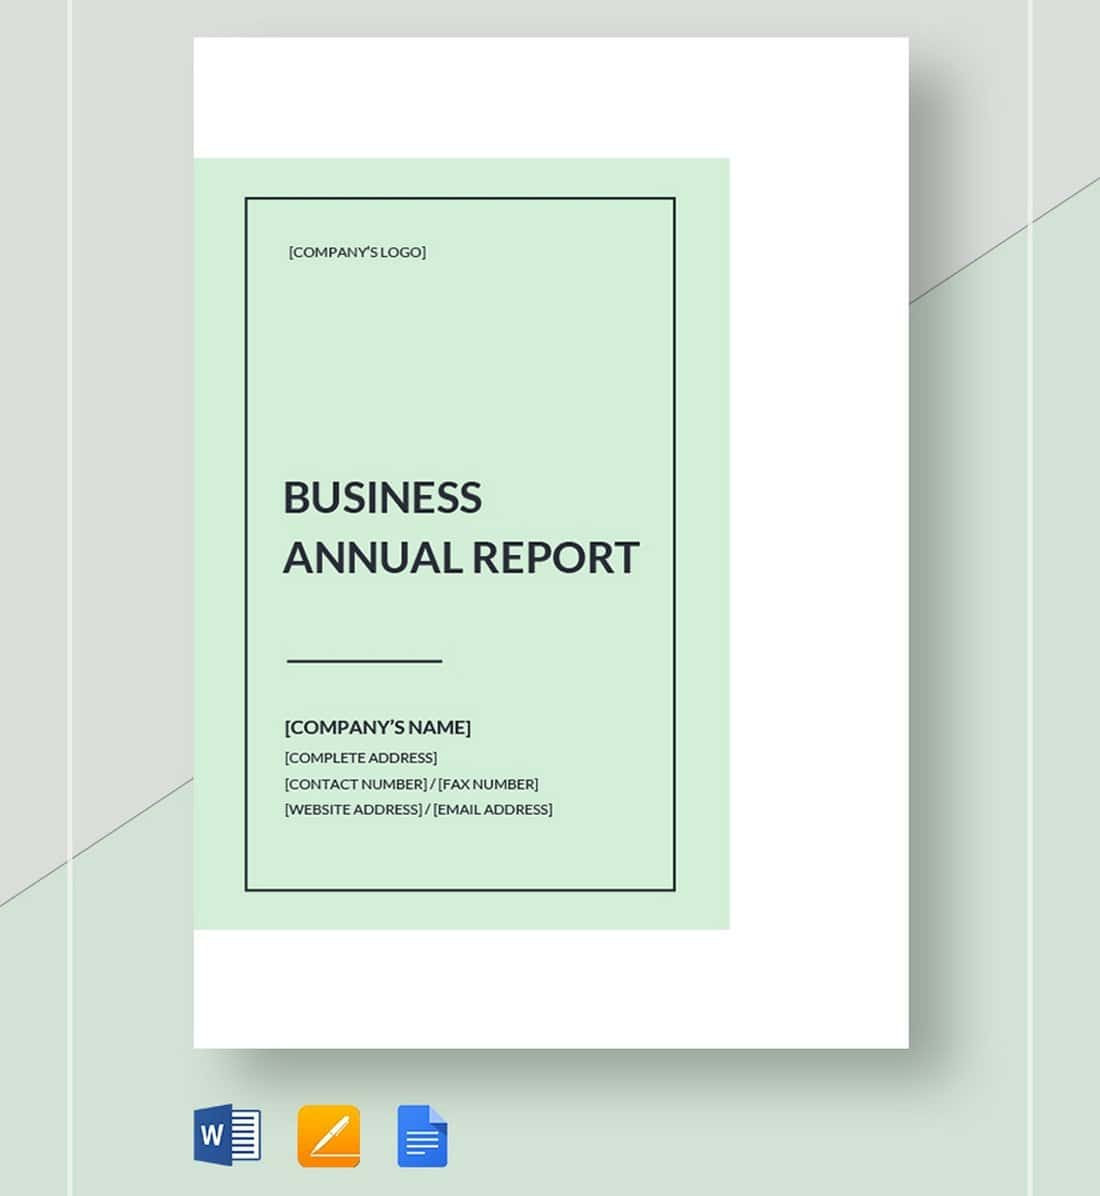 Free-Minimal-Business-Annual-Report-Template 30+ Annual Report Templates (Word & InDesign) 2020 design tips  Inspiration|annual|report|template